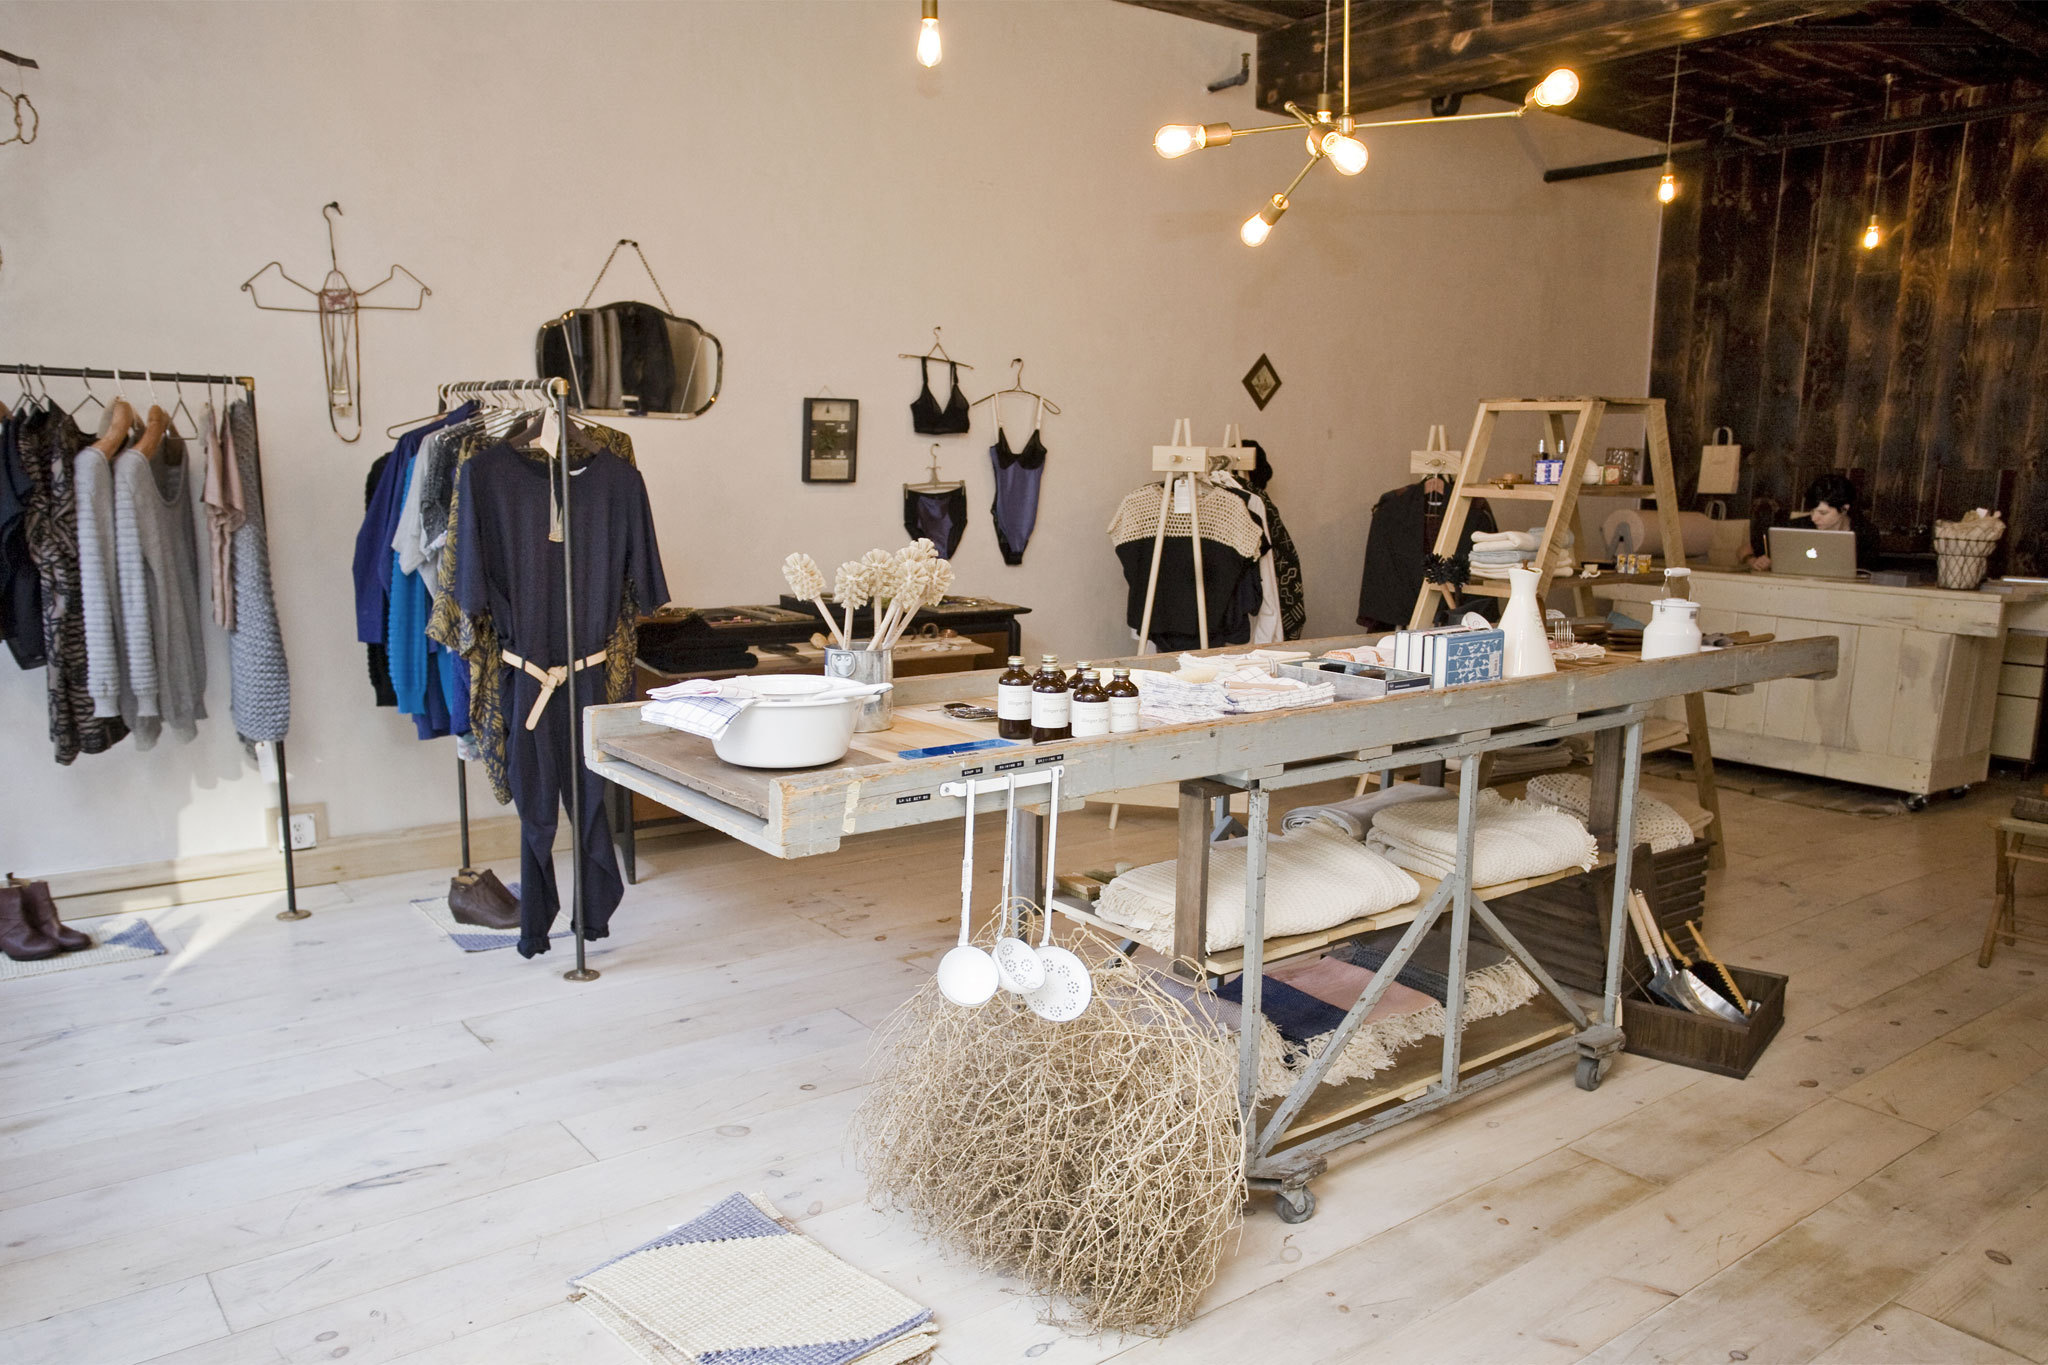 The best shops in Williamsburg